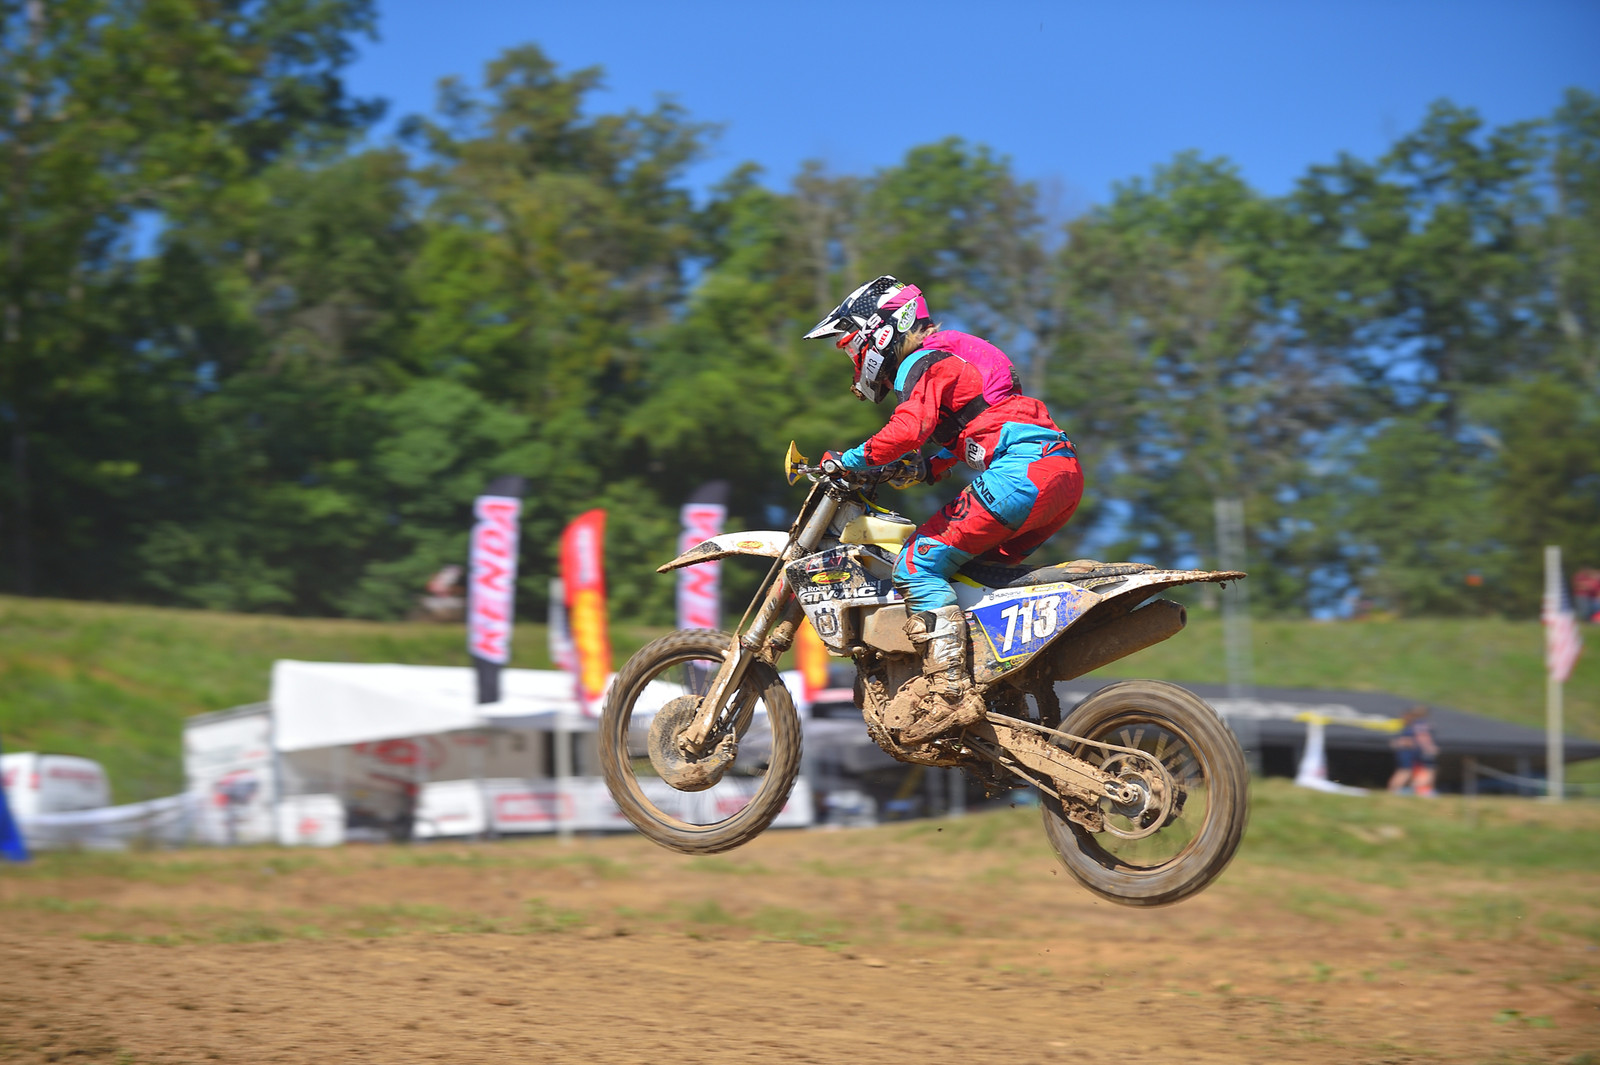 Tayla Jones - John Penton GNCC - Motocross Pictures - Vital MX